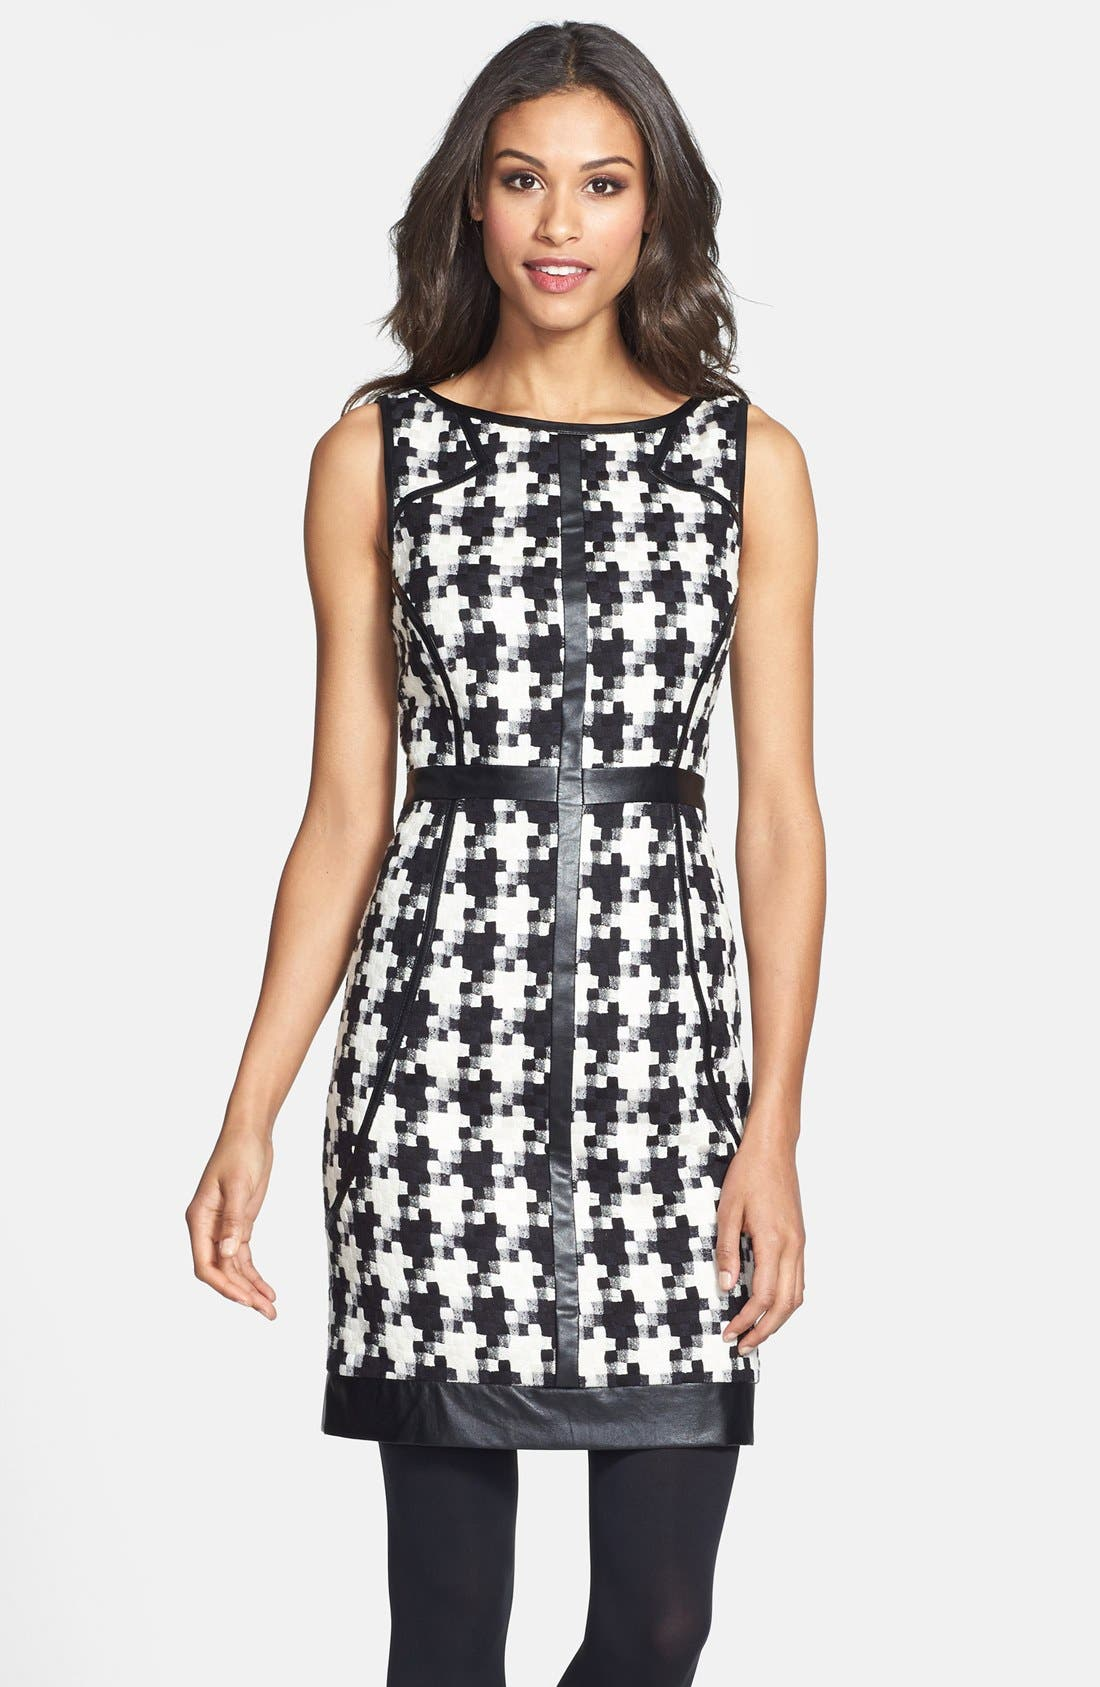 Alternate Image 1 Selected - Laundry by Shelli Segal Faux Leather Trim Houndstooth Sheath Dress